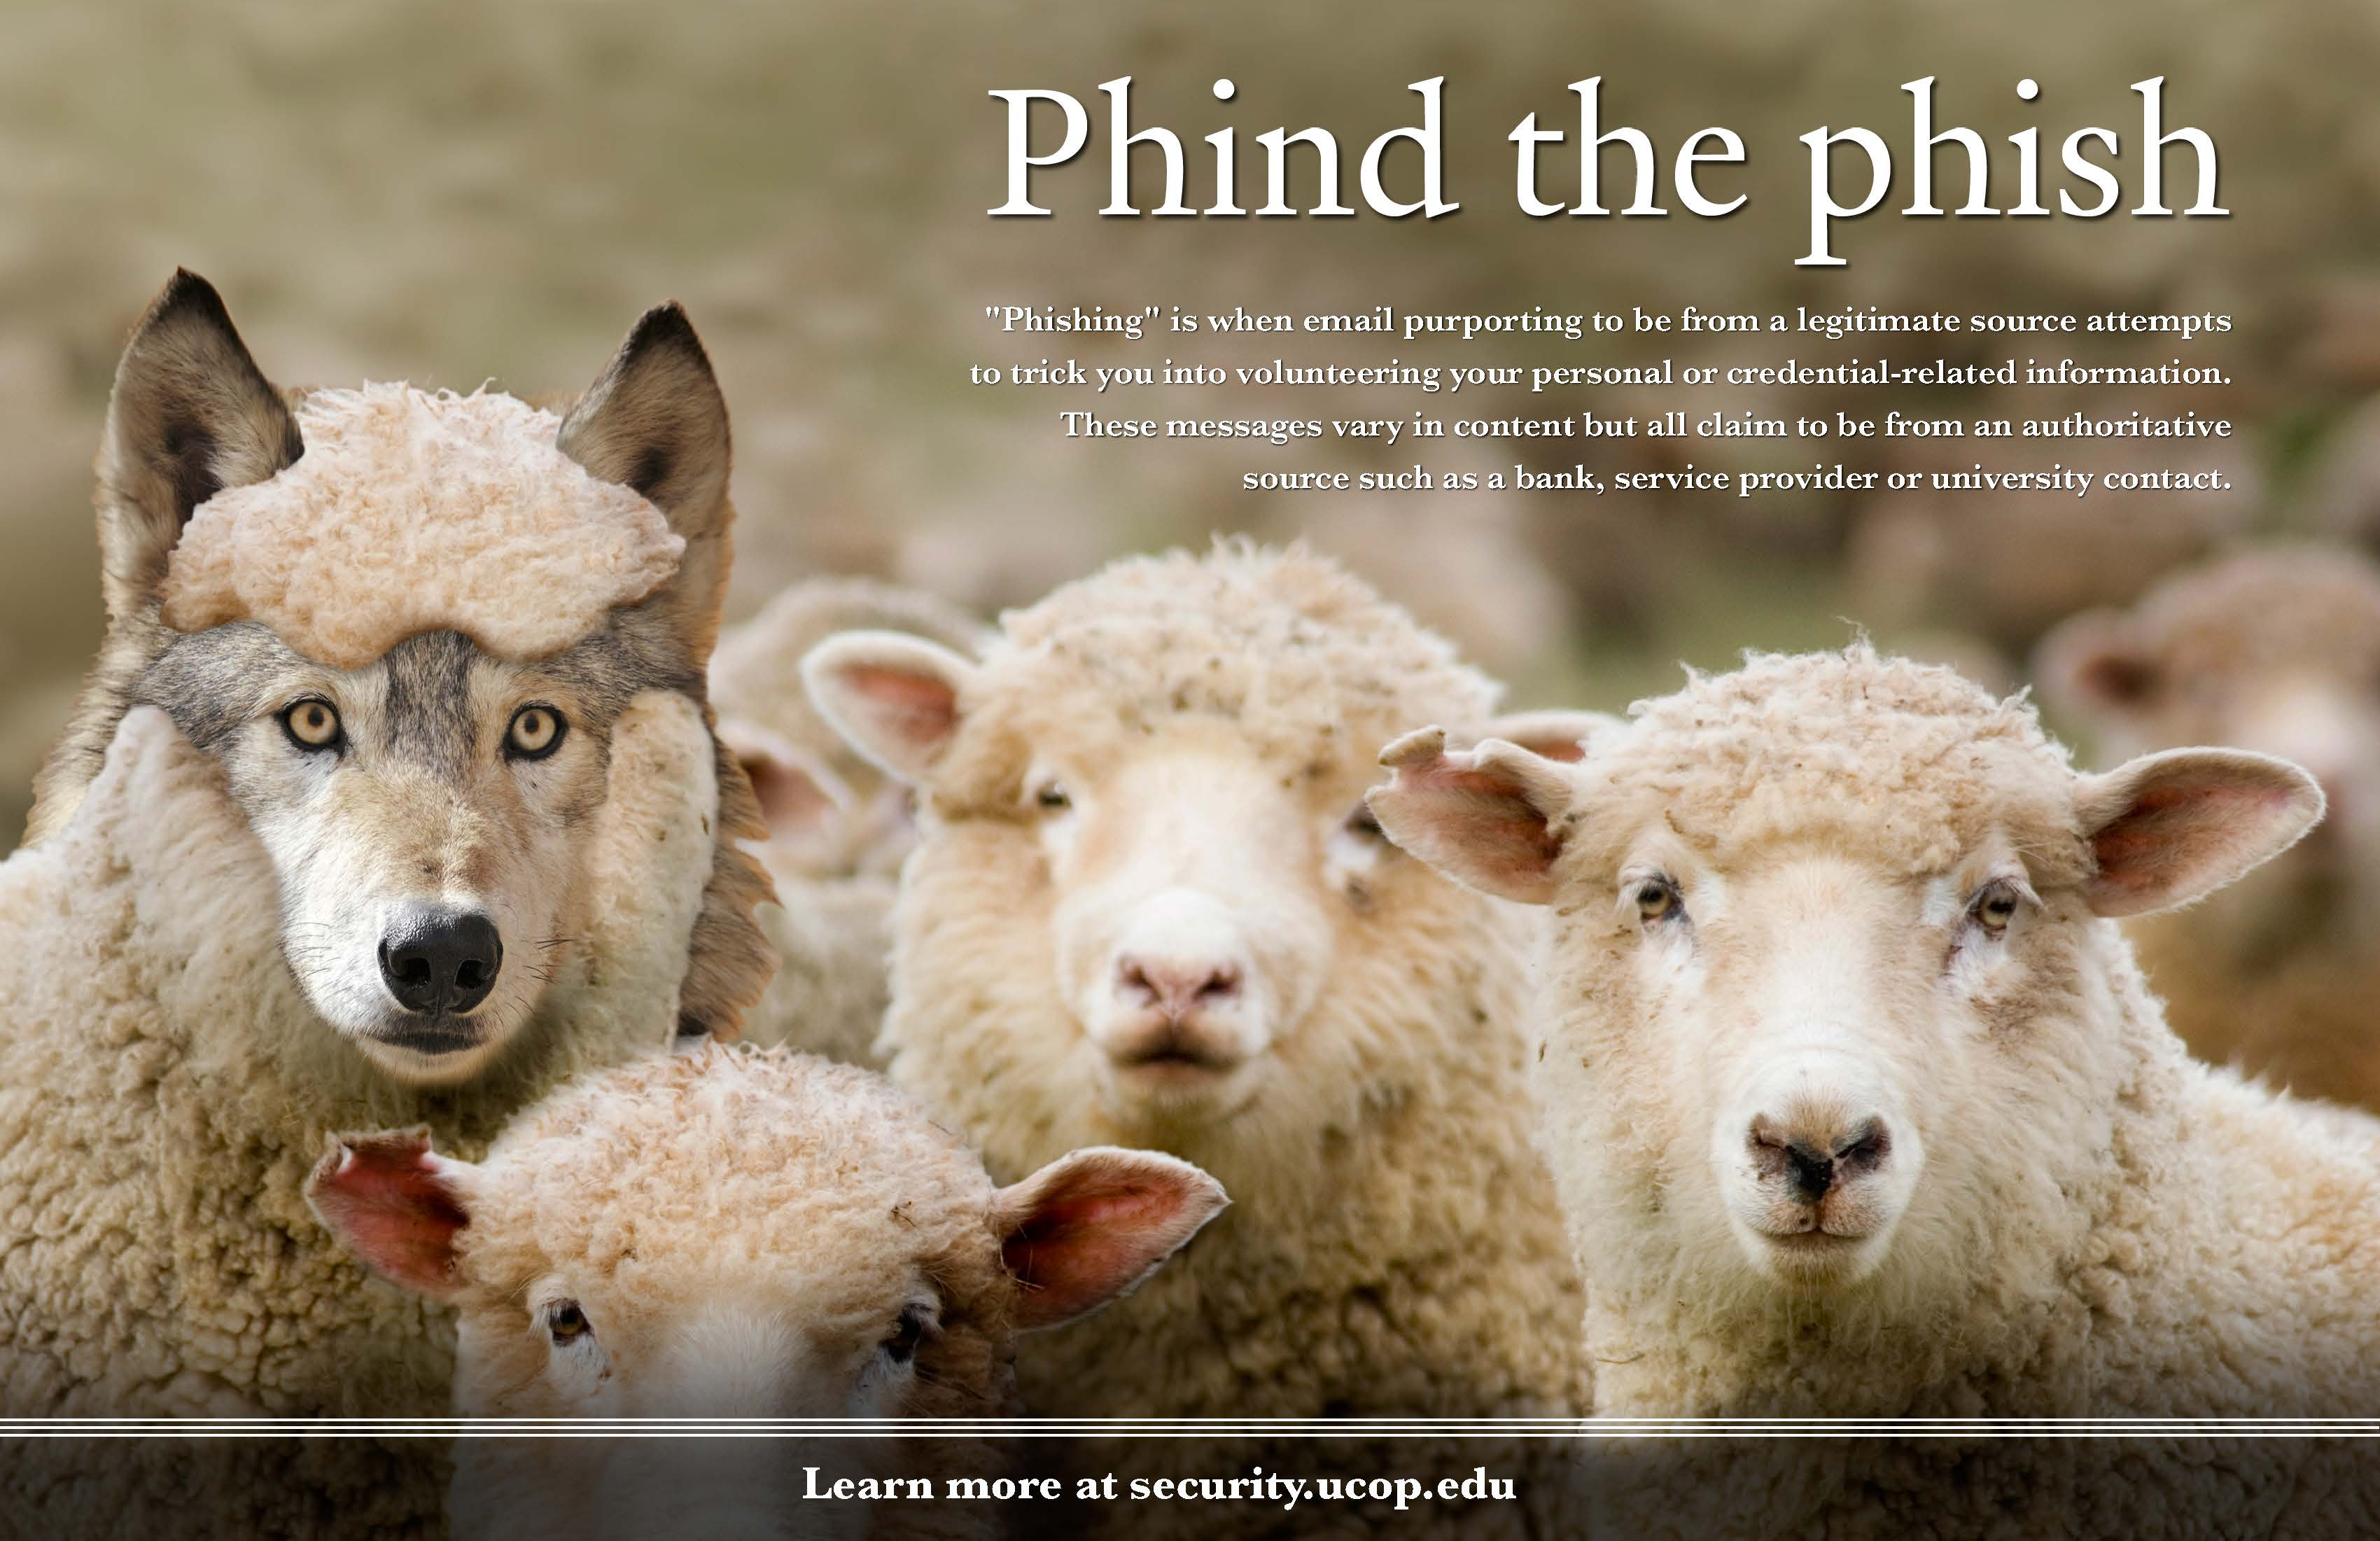 Phind the phish - Sheep-wolf